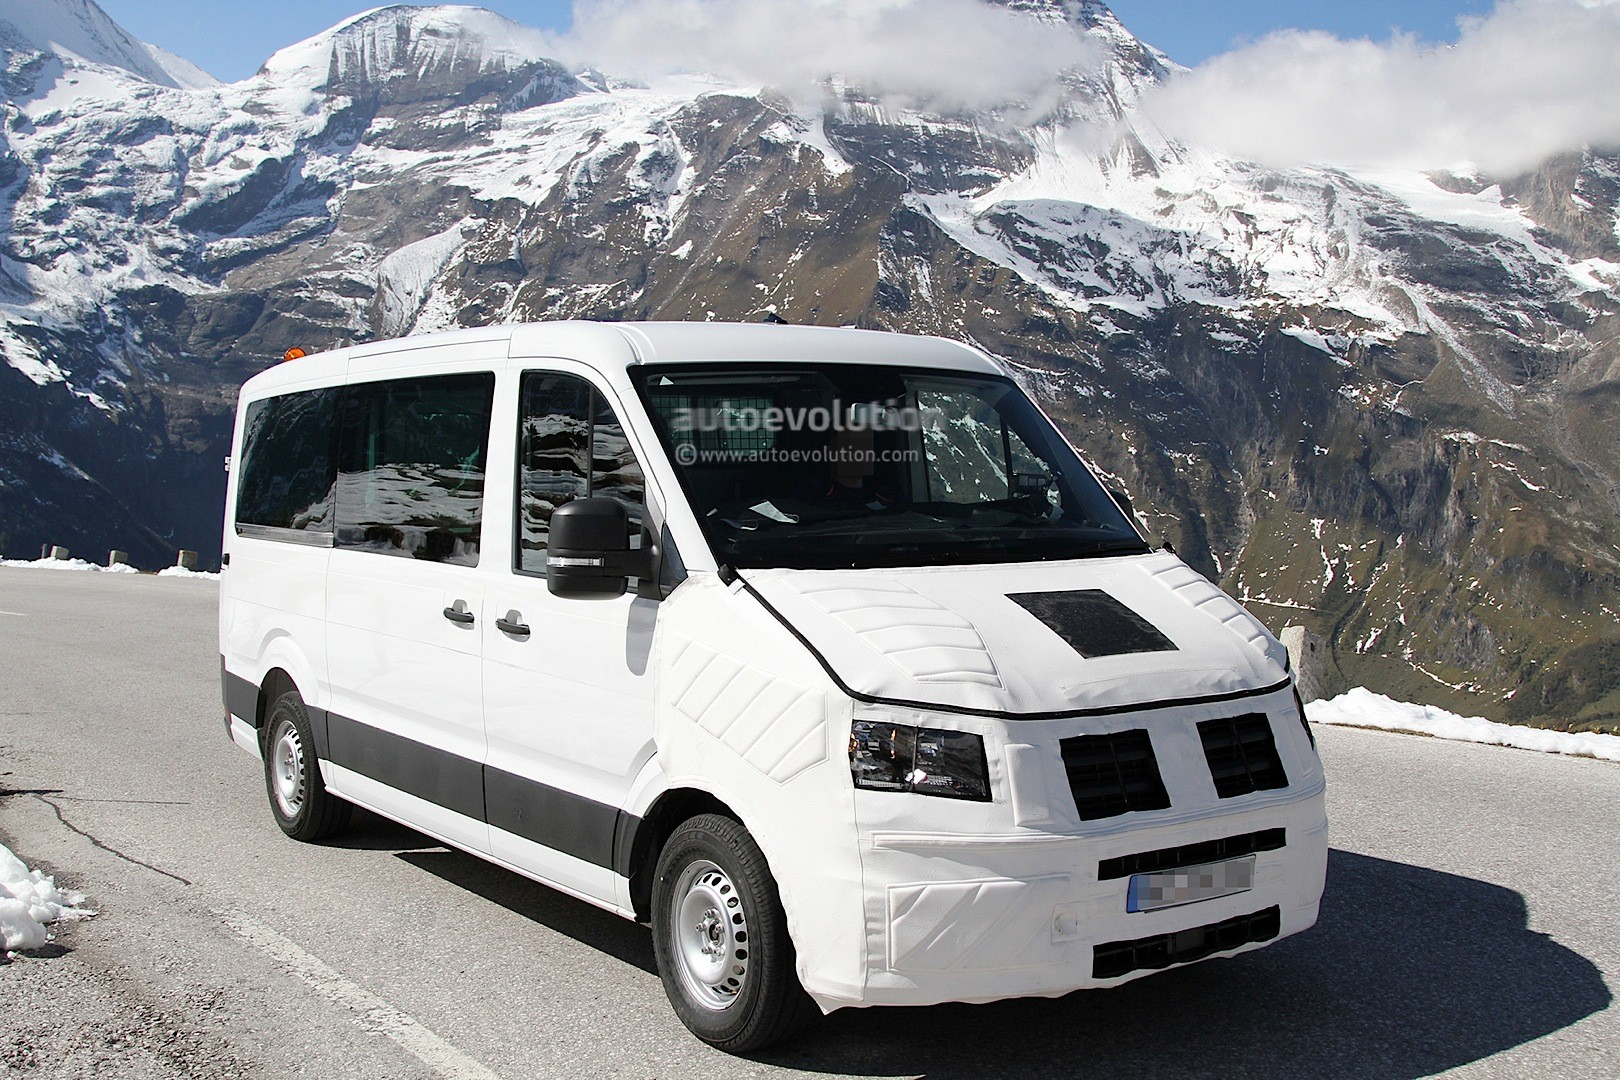 Spyshots: 2016 / 2017 Volkswagen Crafter Takes after the T6 Transporter - autoevolution